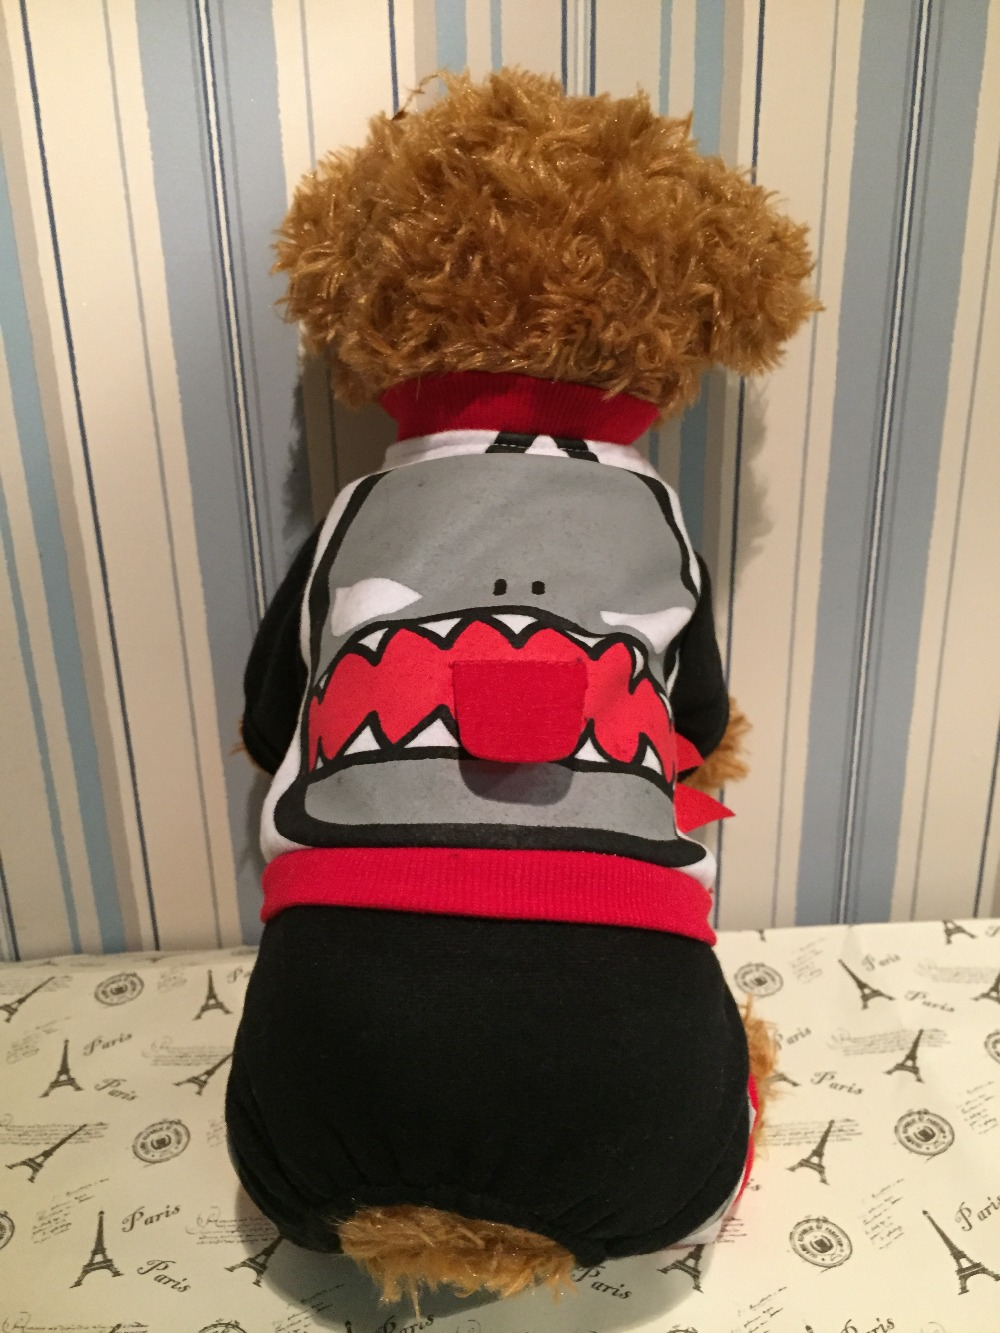 HOT Sales Halloween Costome Pet Dog Clothes Clothing Dress Scary Dog pet Clothing Party Dog Pet Christmas Monster Dress